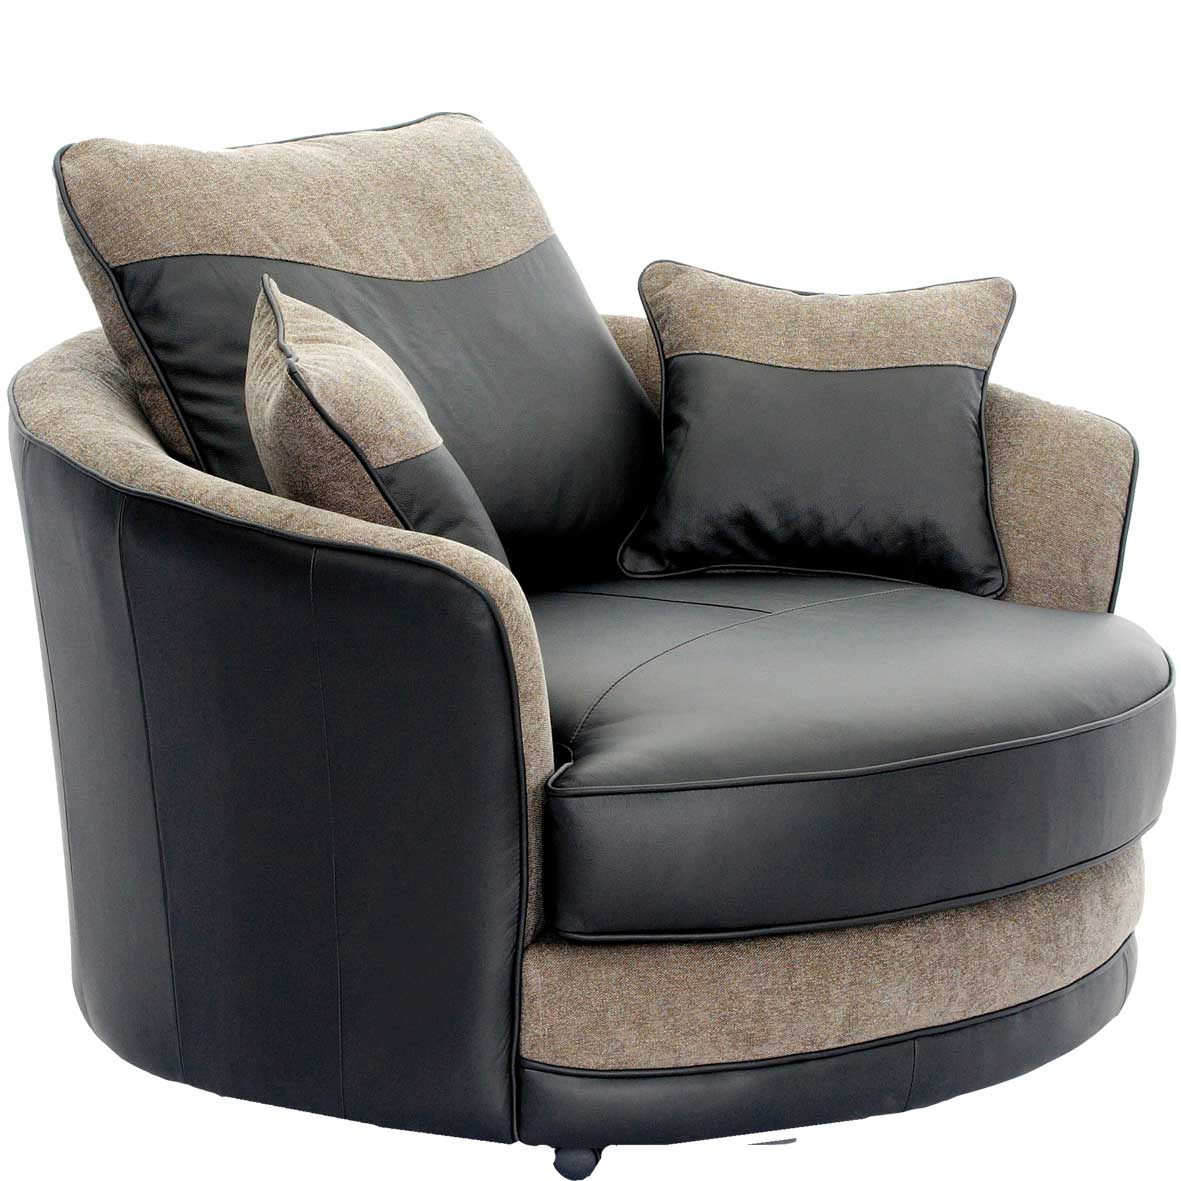 Swivel Tub Chair Swivel Tub Chair